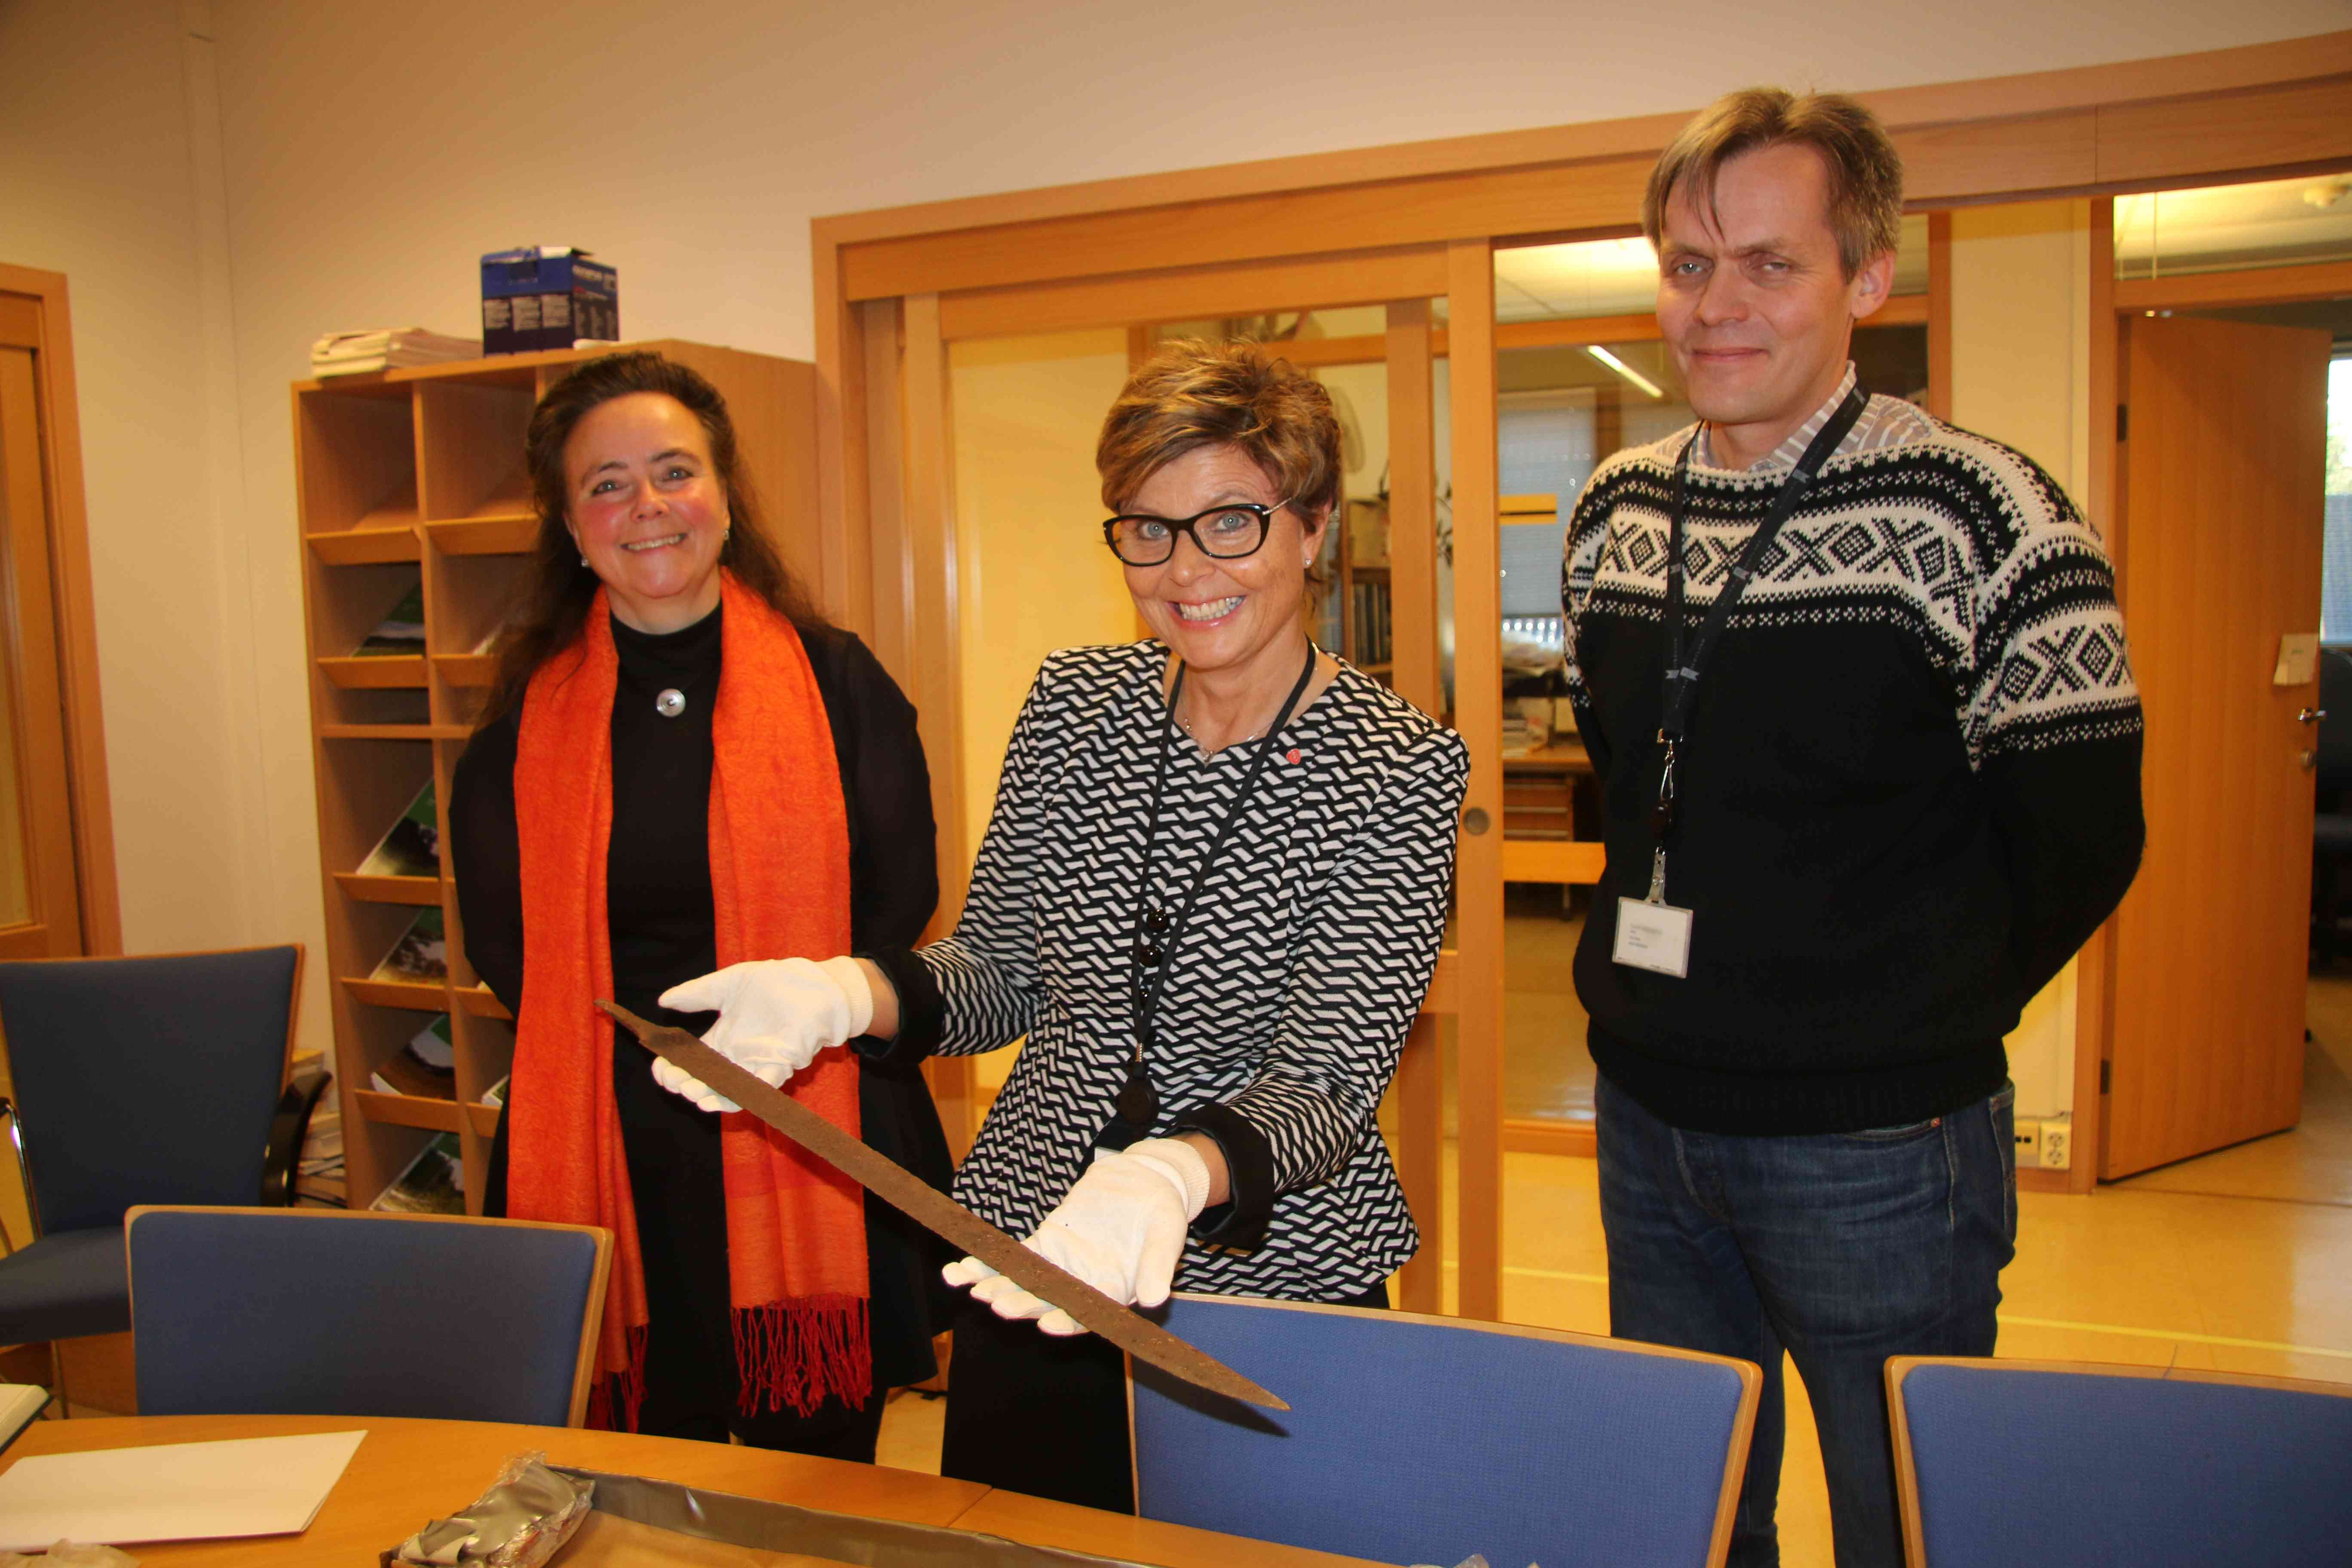 Hordaland County Council with Viking sword